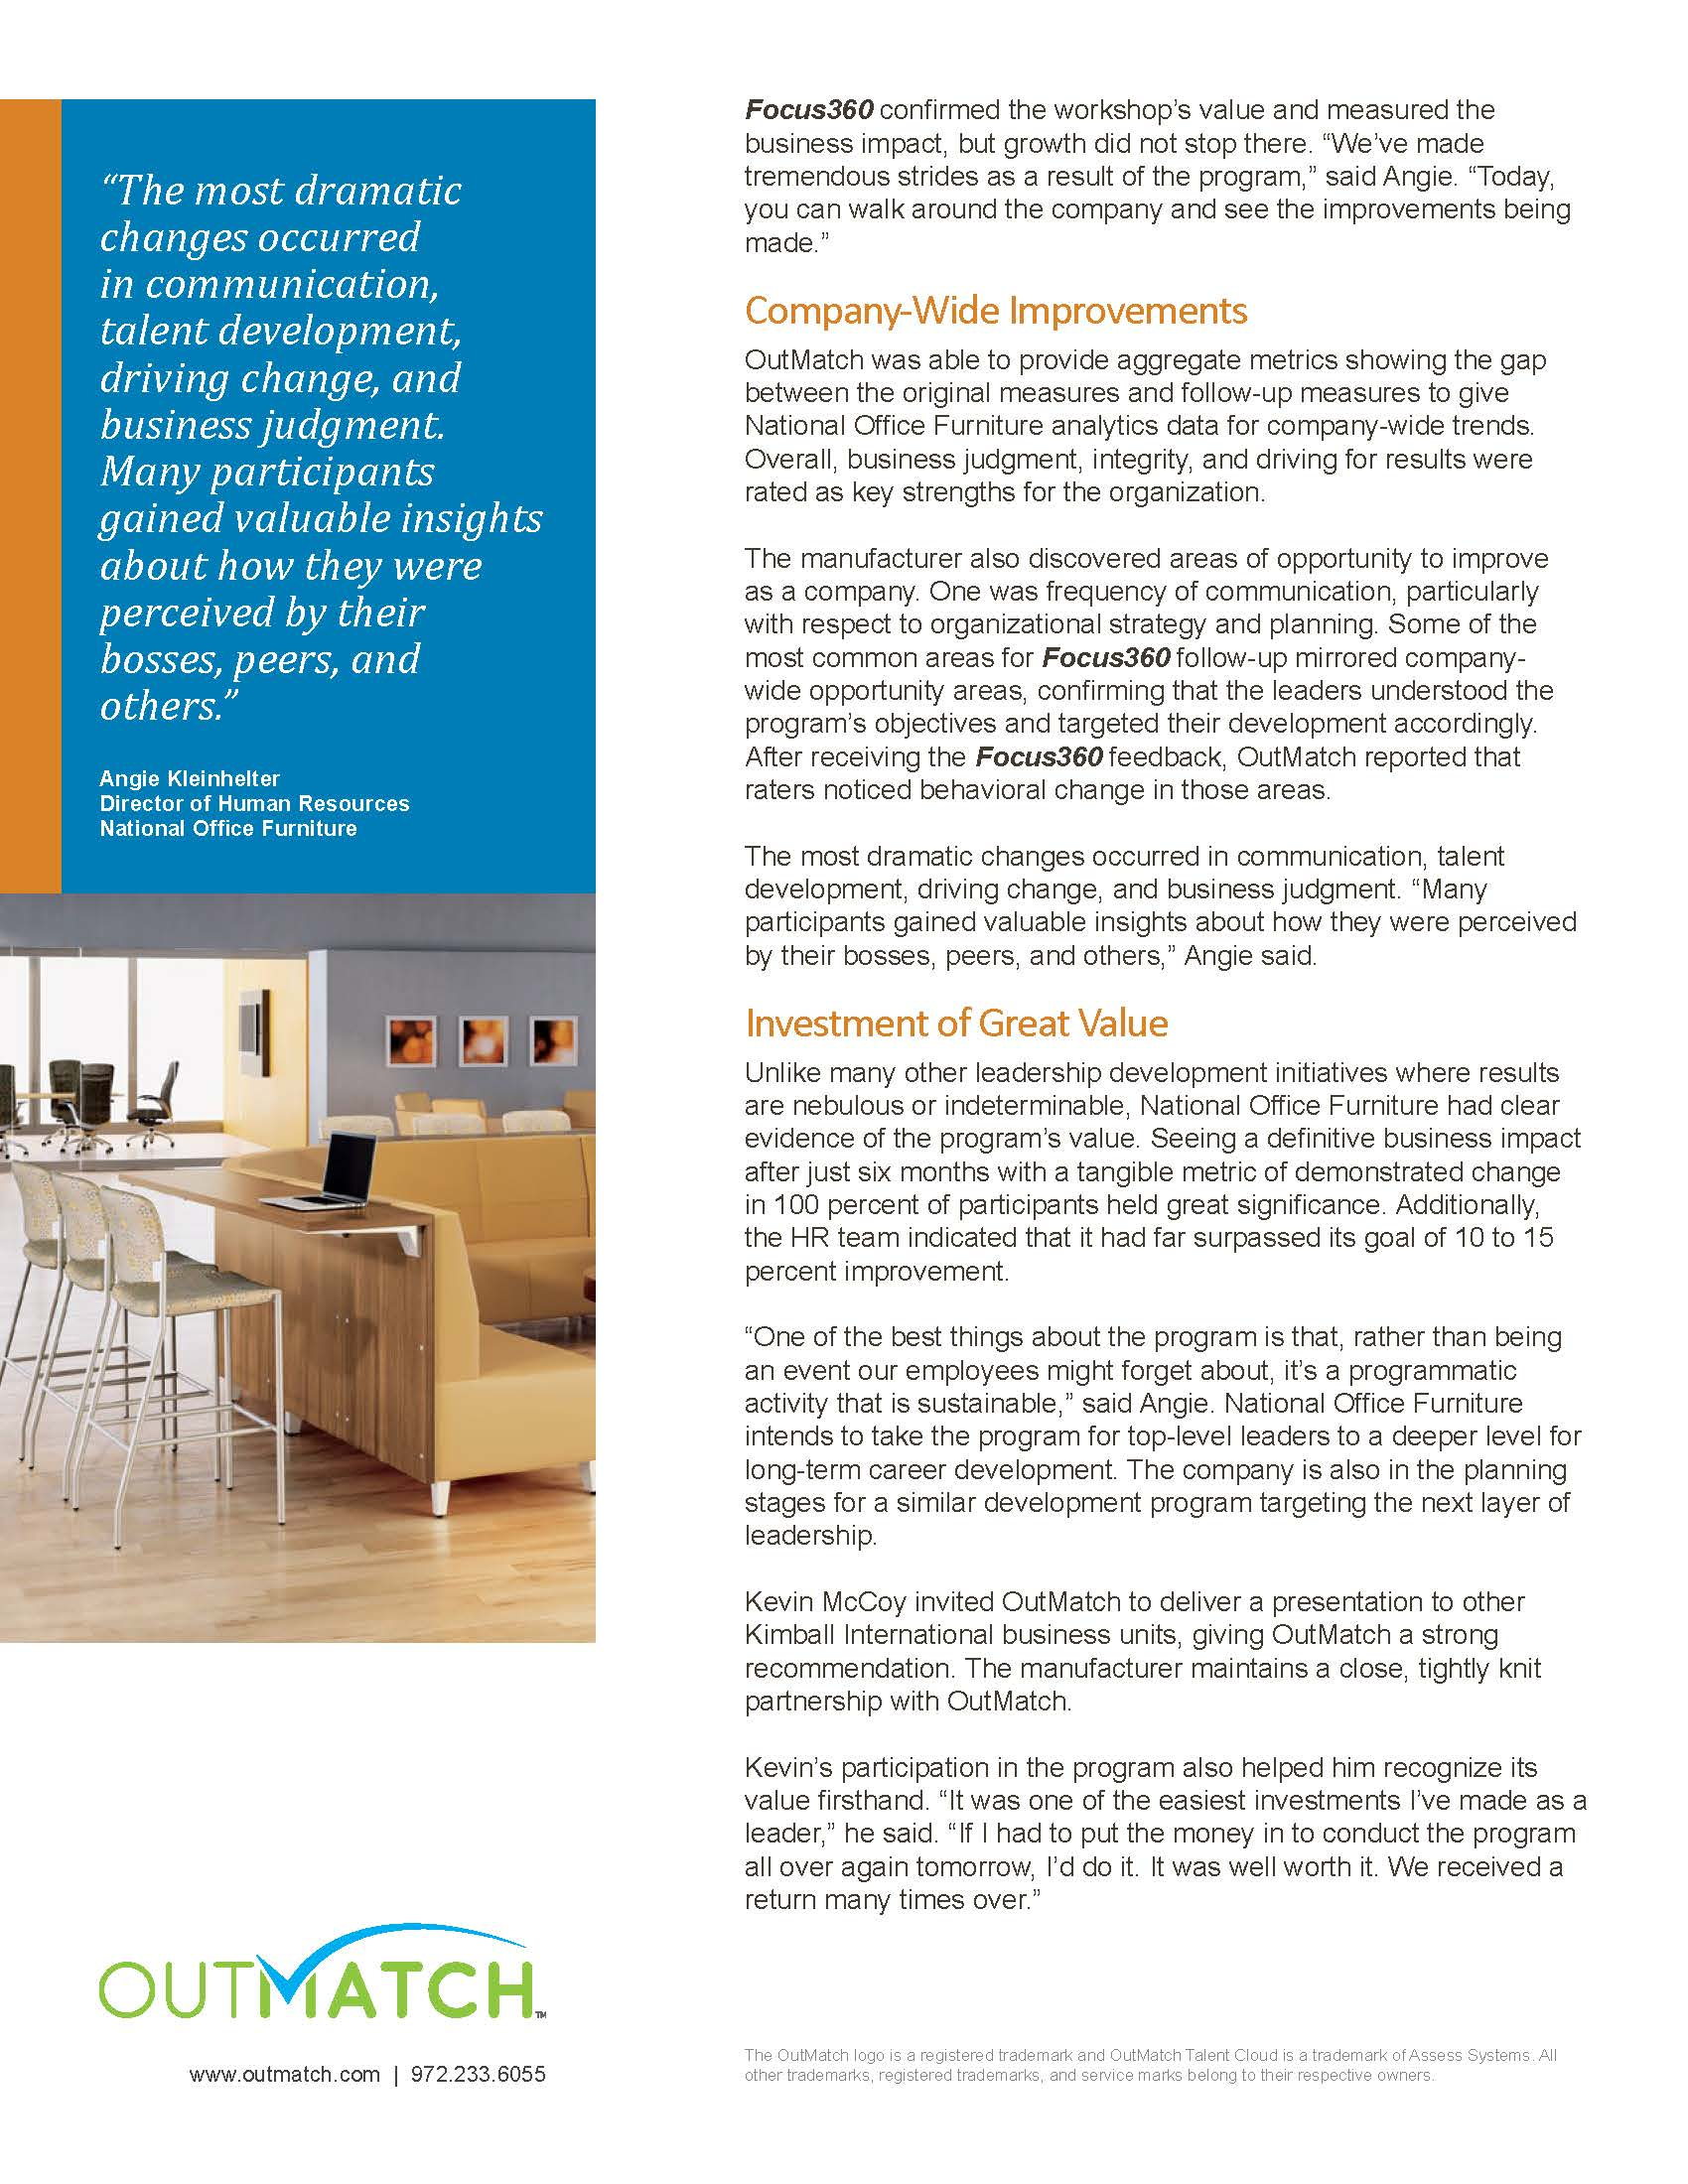 Pine valley furniture case study solution   College paper